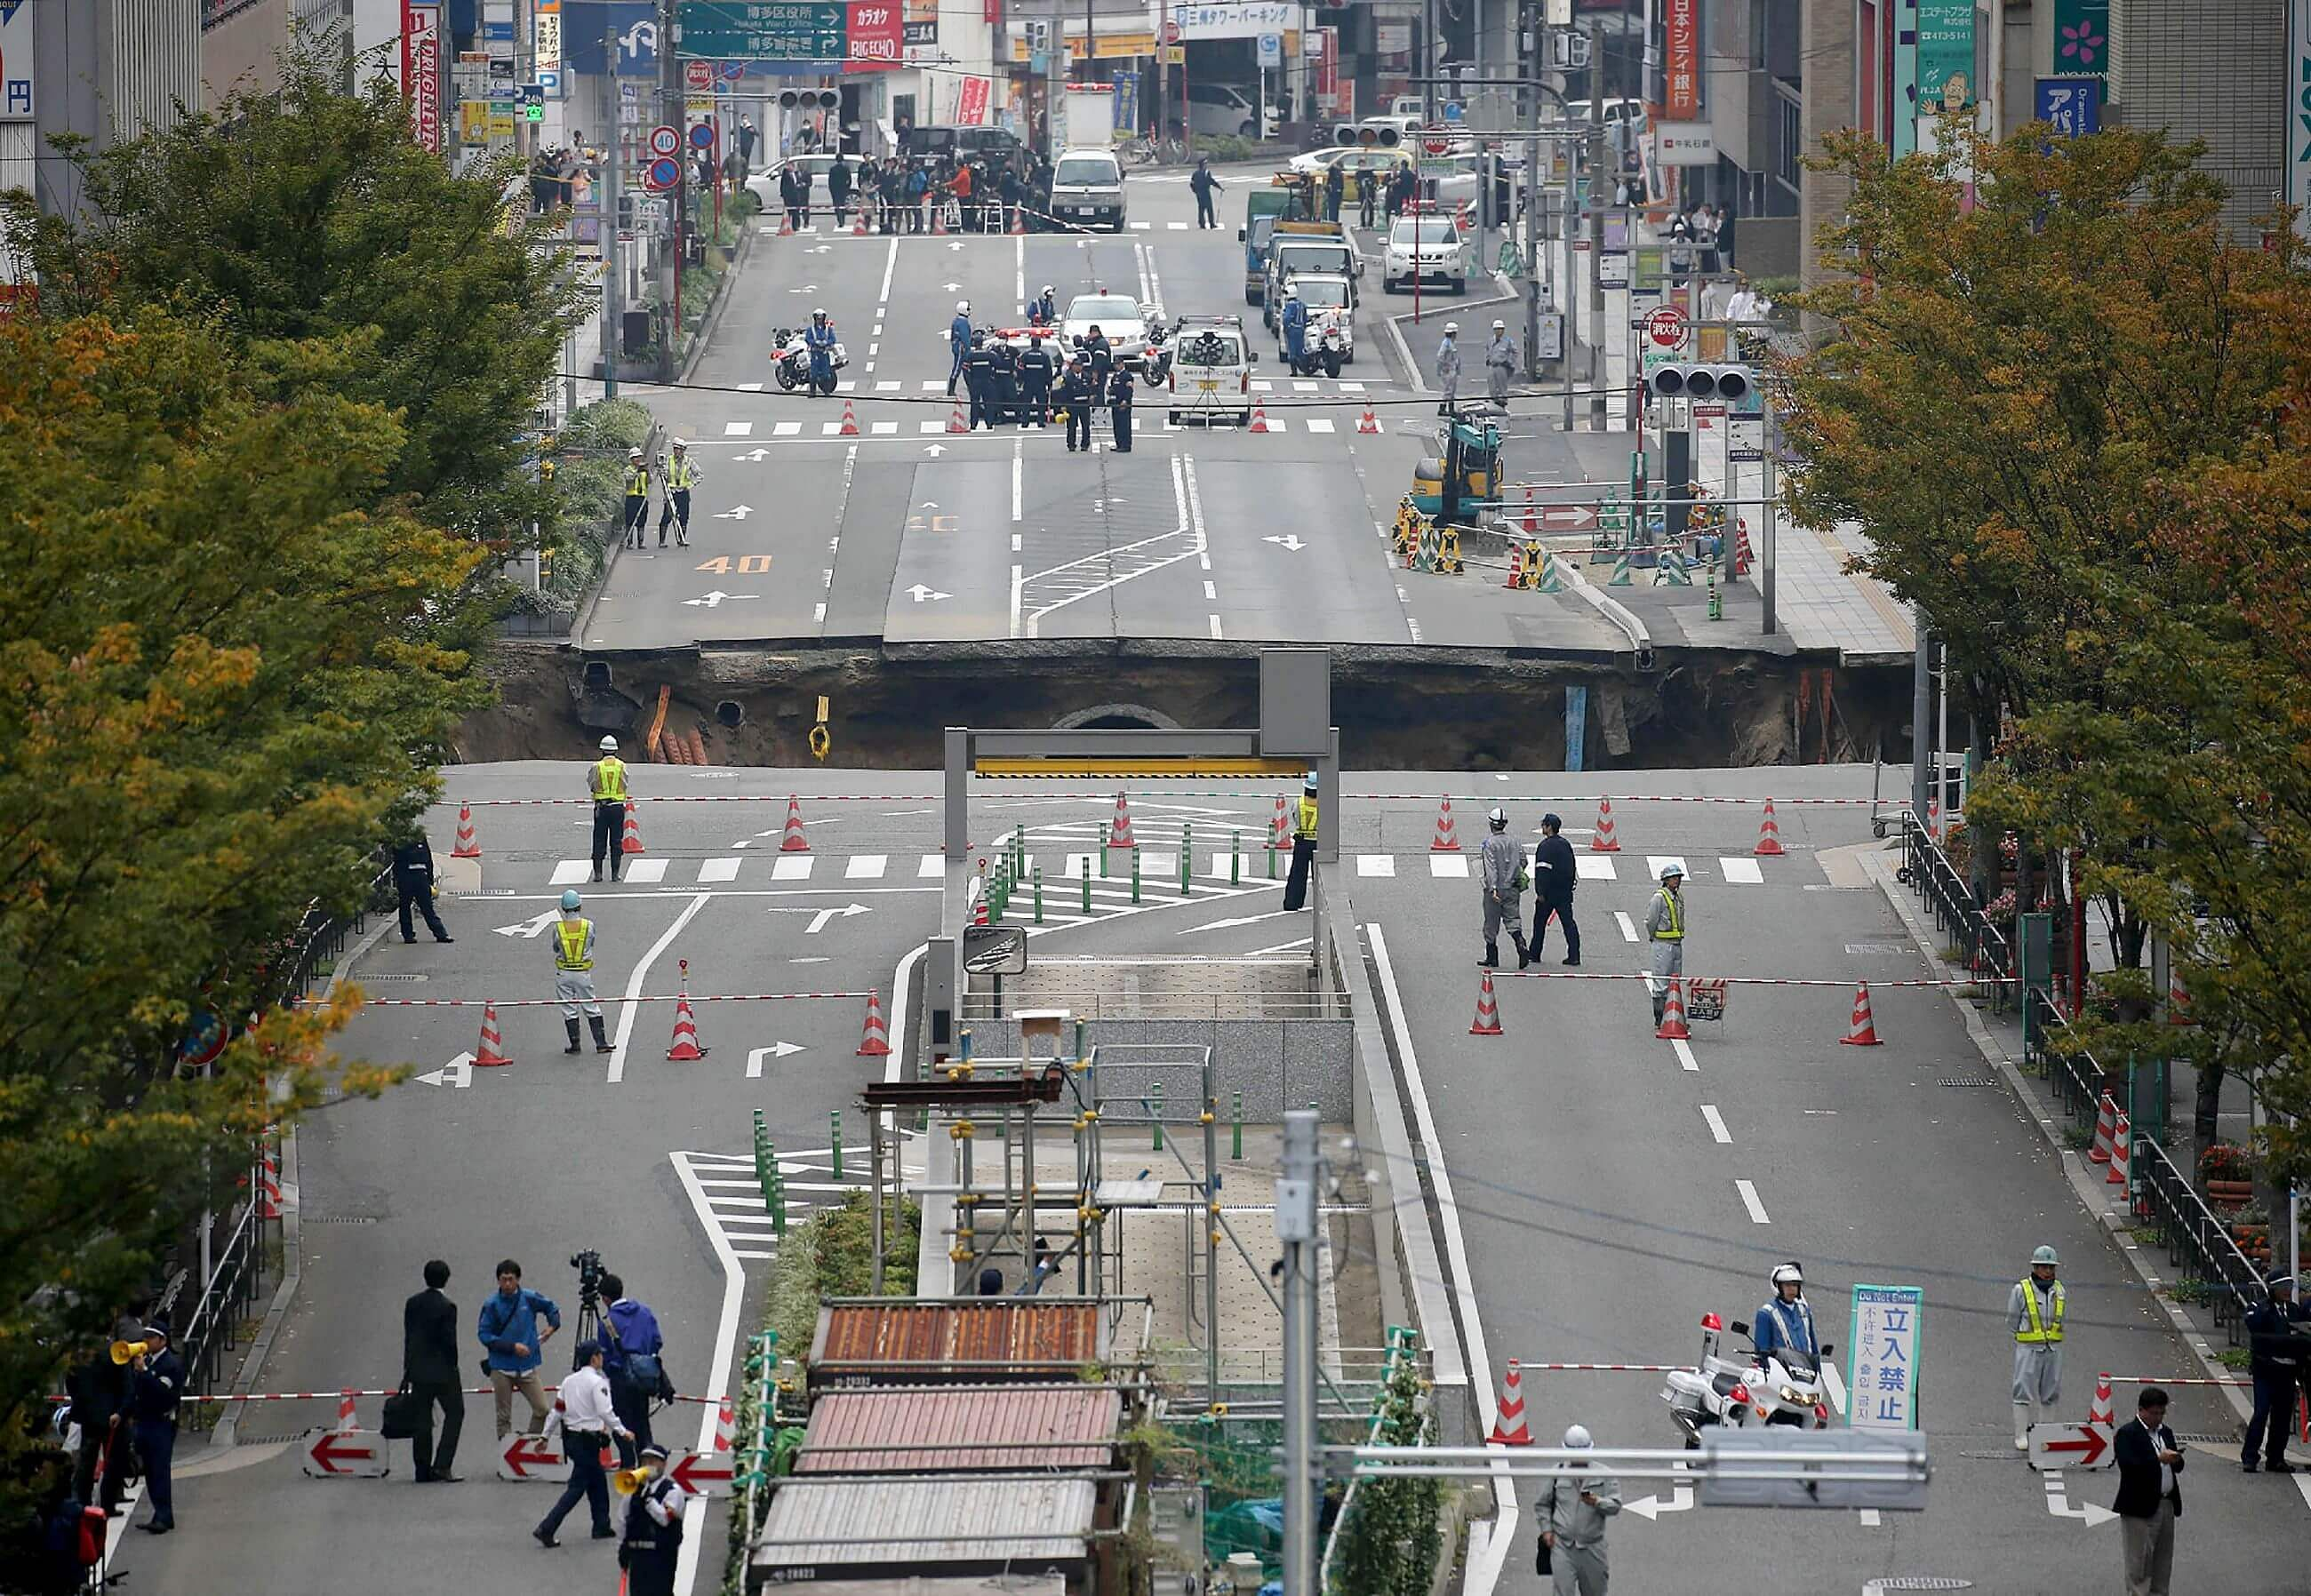 Giant sinkhole swallows Japan city street